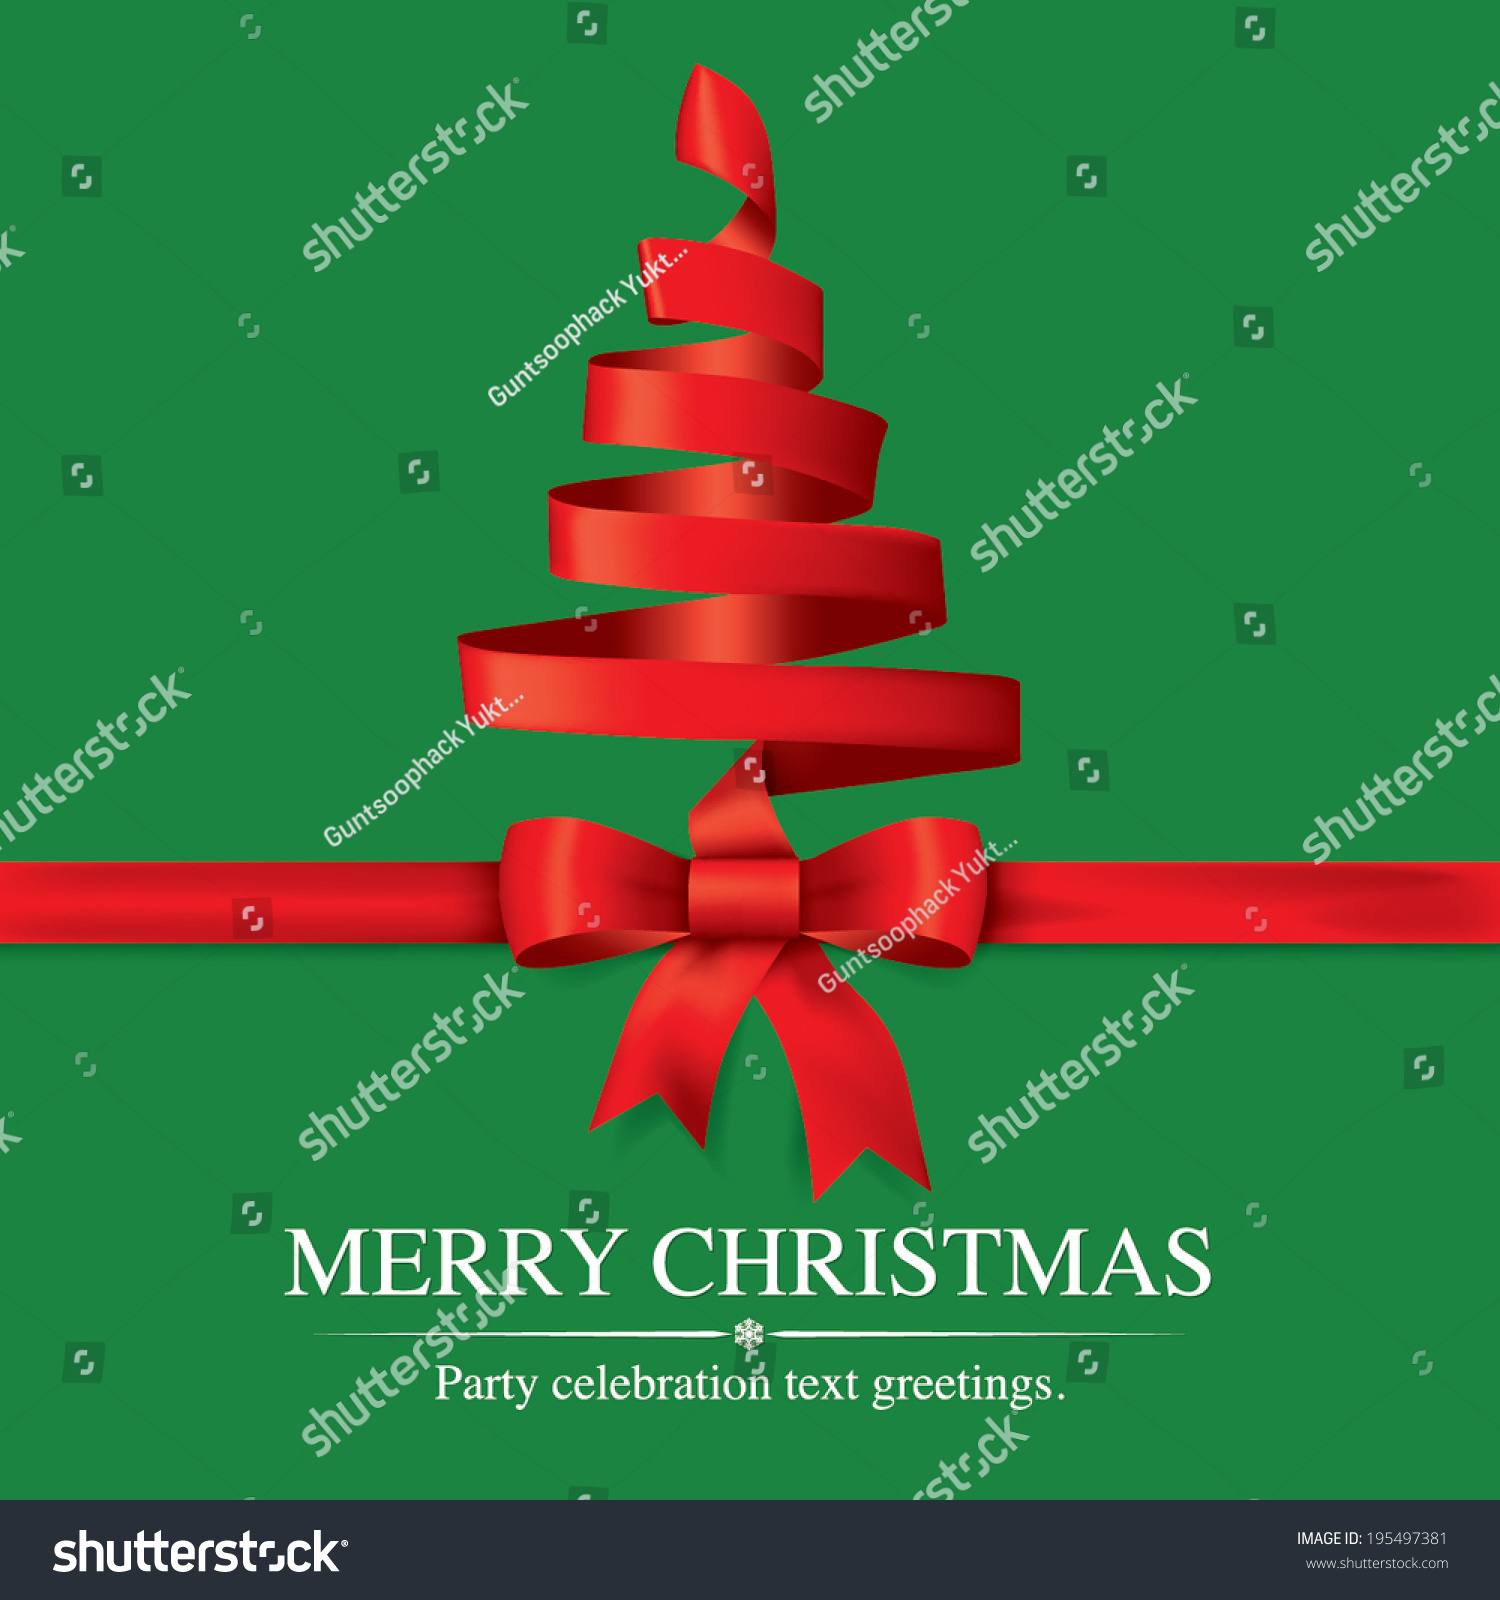 Christmas Tree With Red Ribbon: Christmas Tree From Red Ribbon Vector Background